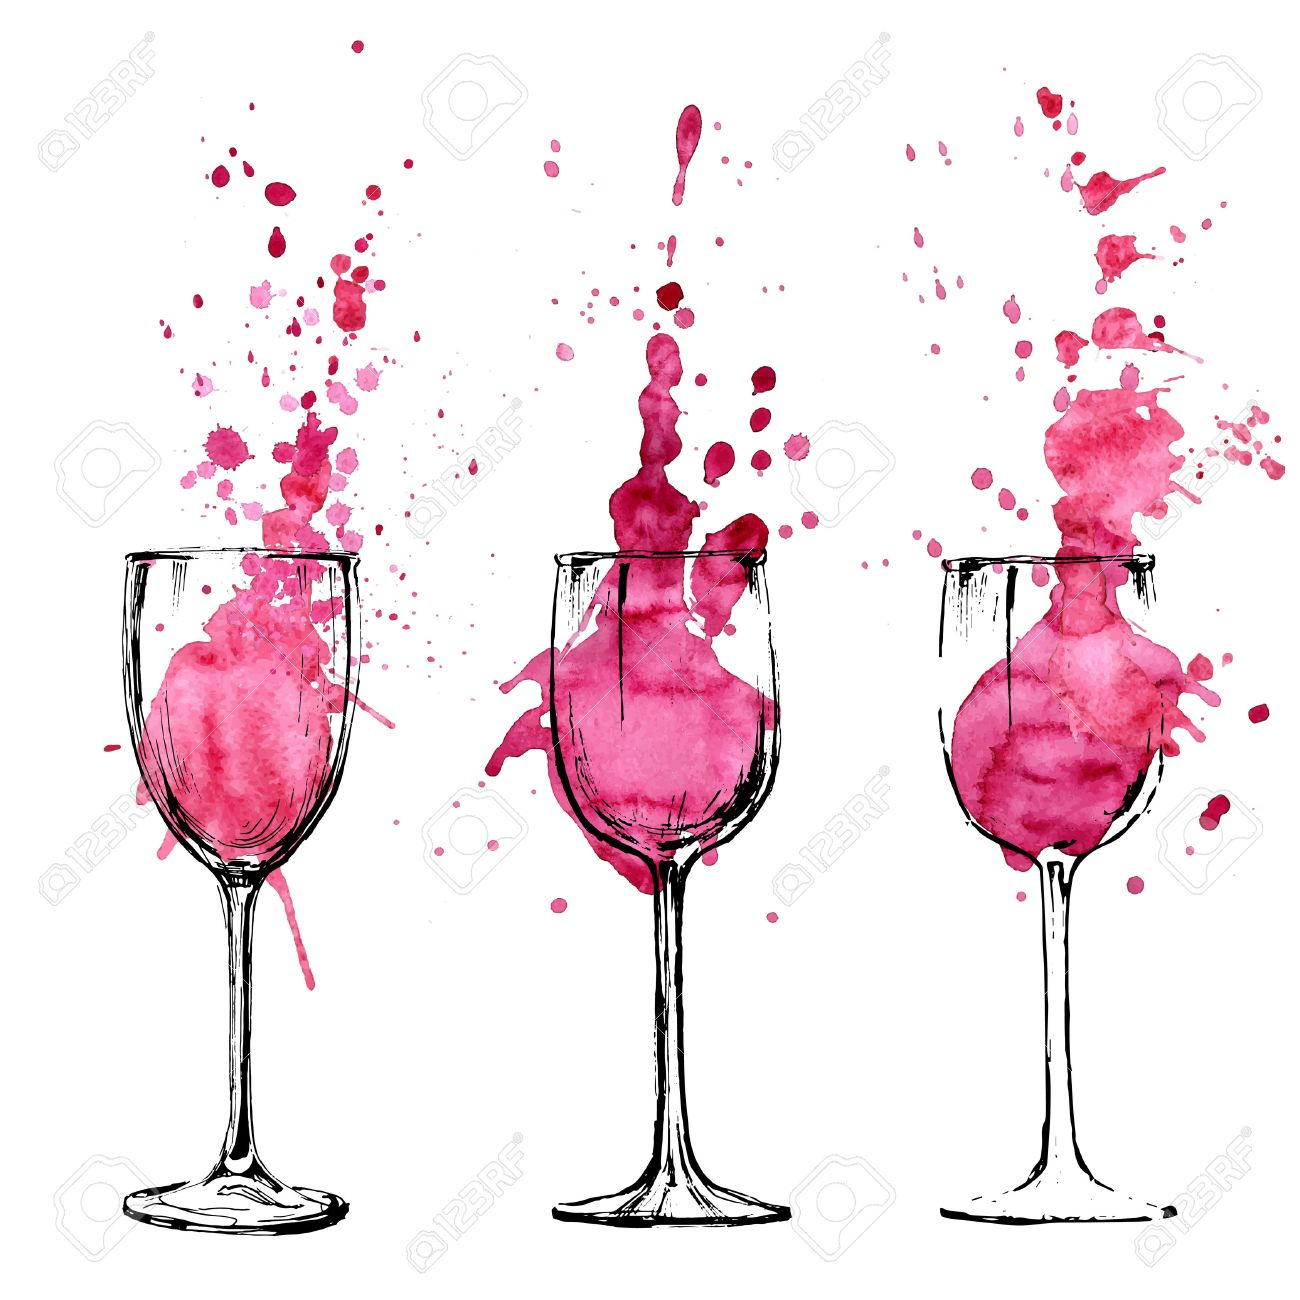 Wine Illustration Sketch And Art Style Royalty Free Cliparts Vectors And Stock Illustration Image 39288466